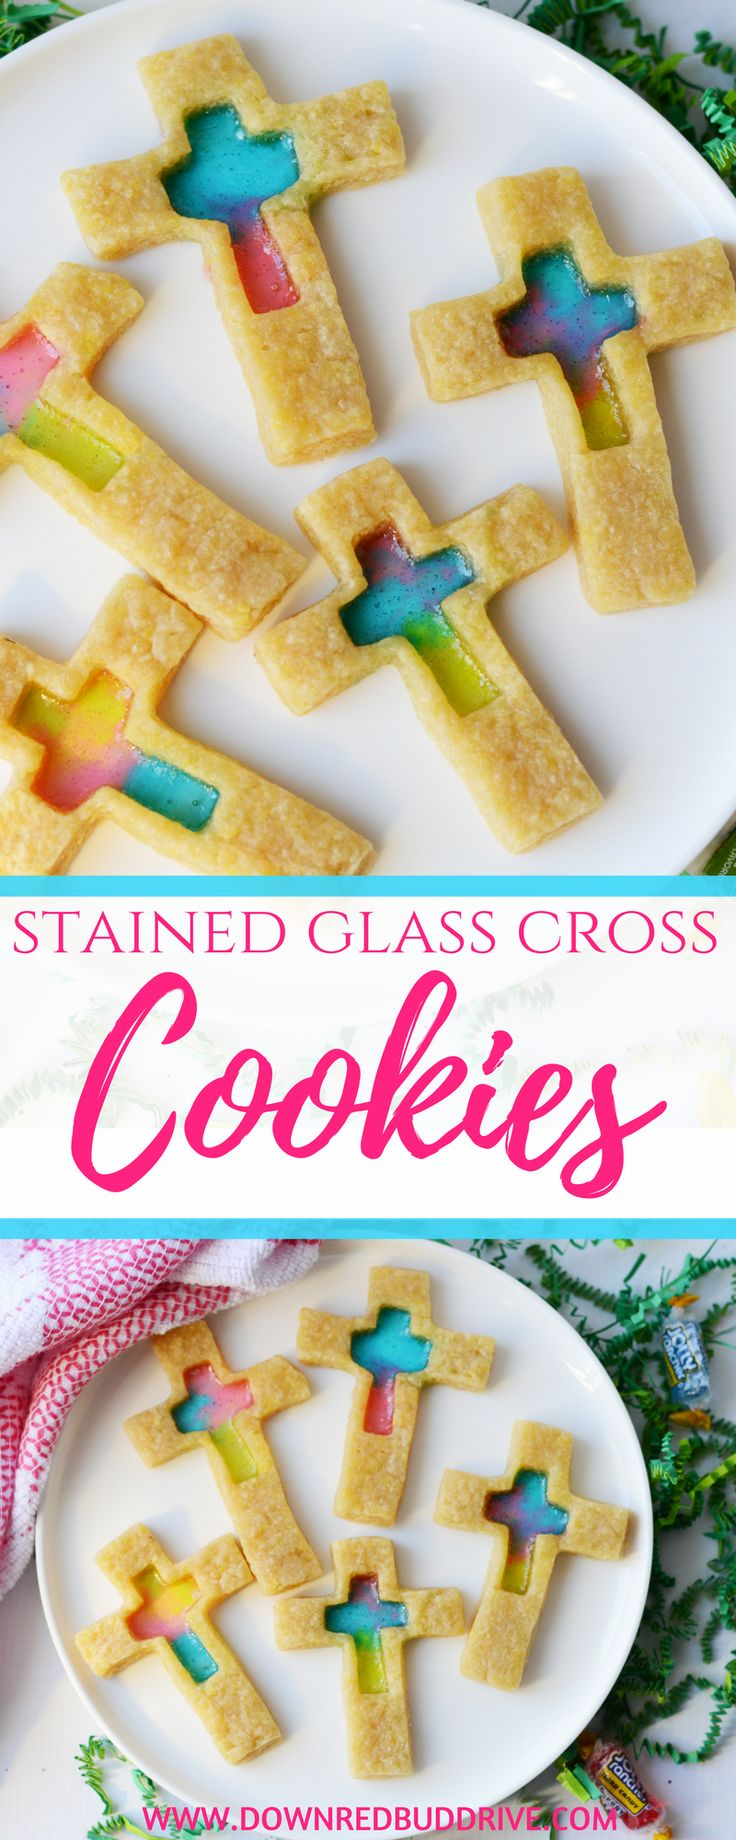 Stained Glass Cross Cookies | Stained Glass Cookies | Cross Cookies | Easter Cookies | Christian Cookies | Resurrection Sunday | Resurrection Sunday Cookies | Easter Dessert | Easter Food | Down Redbud Drive #crosscookies #stainedglasscookies #easterrecipe #baptism #resurrectionsunday via @DownRedbudDrive